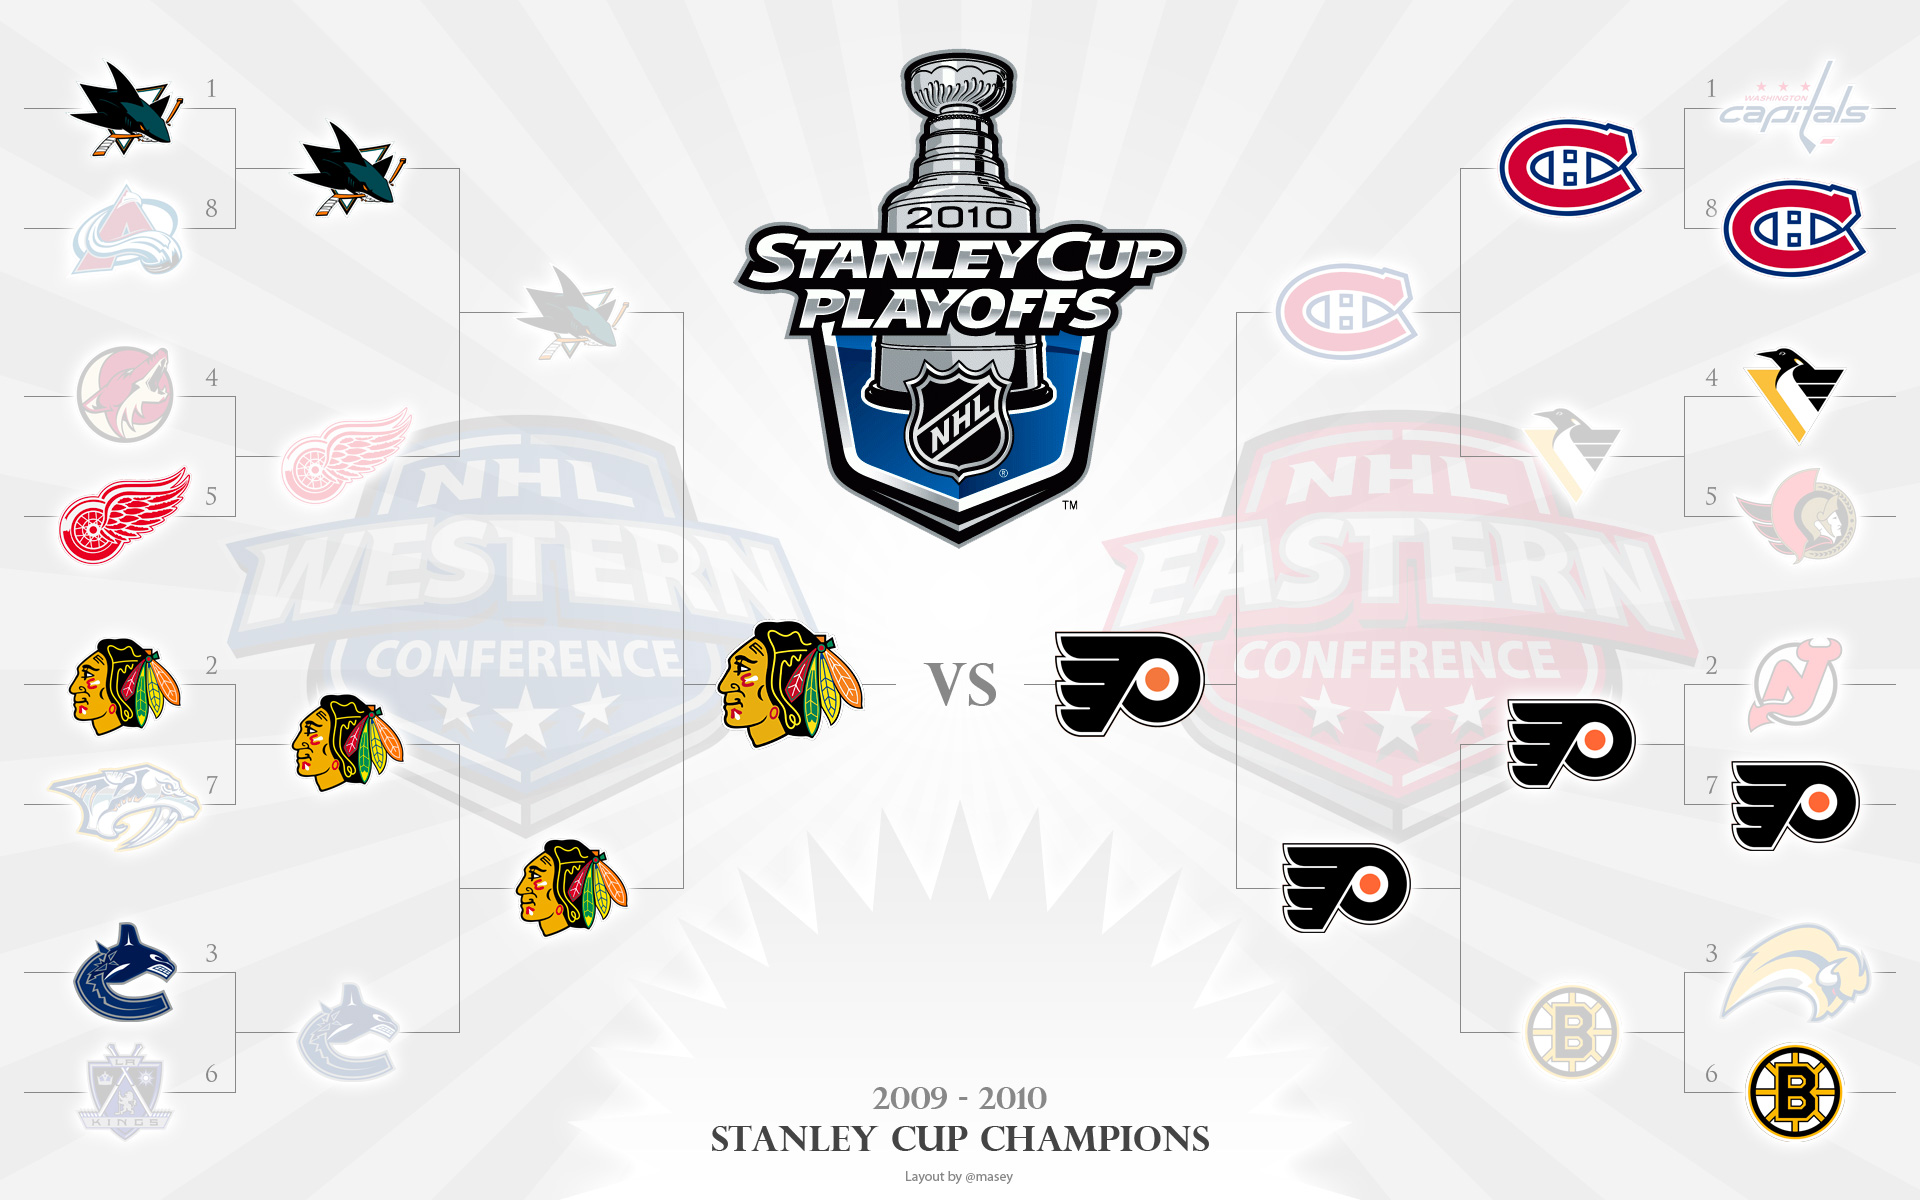 stanley cup playoff stats